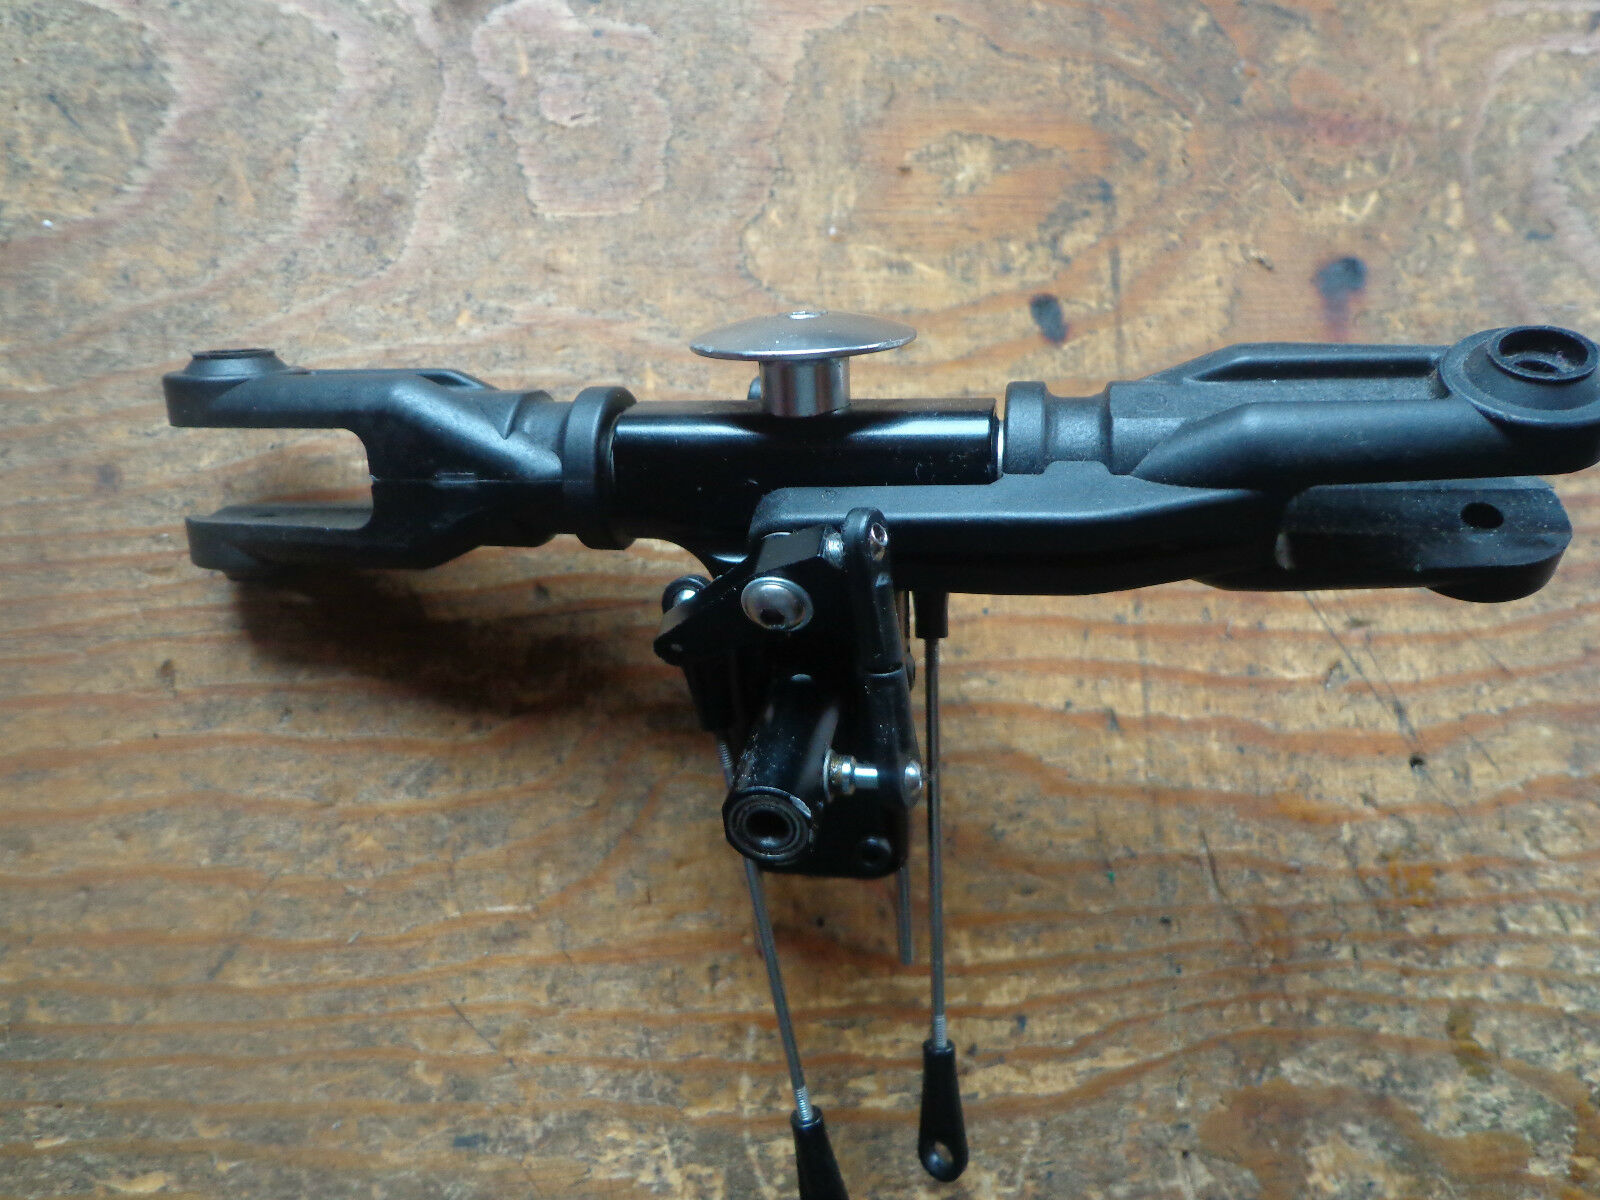 SYNERGY N9 MAIN redOR HEAD ASSEMBLY WITH FLYBAR SEESAW